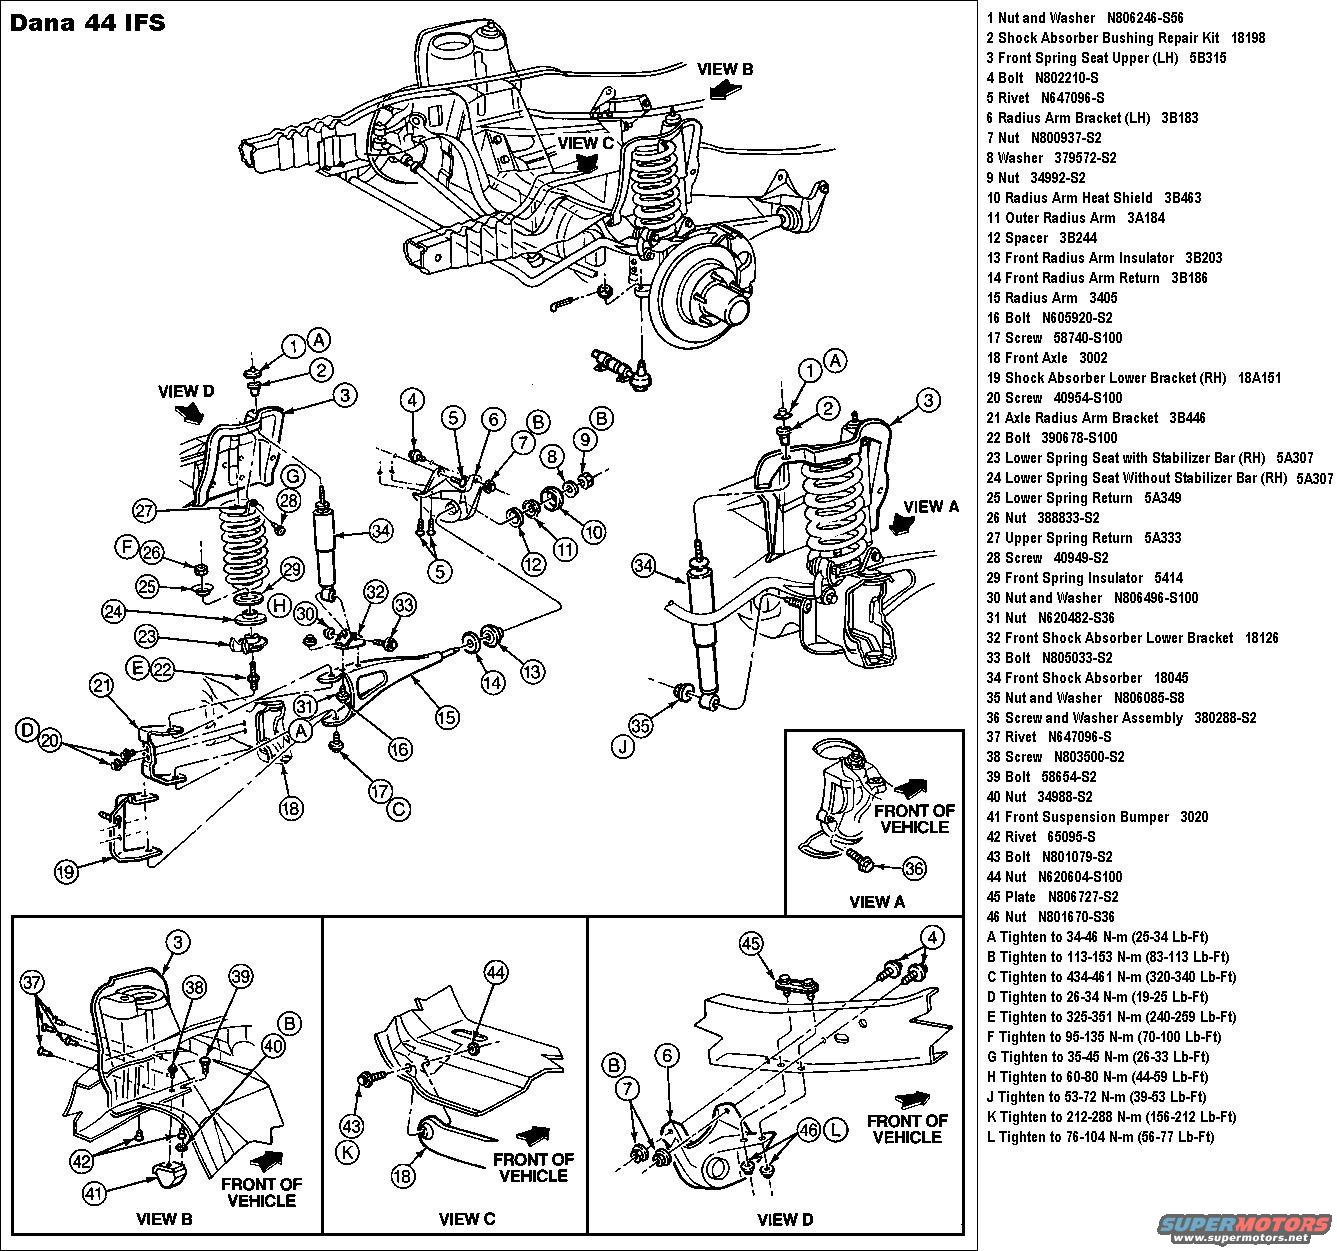 ford f trailer wiring harness diagram wiring diagram and solved i need an f150 trailer towing wiring diagram fixya